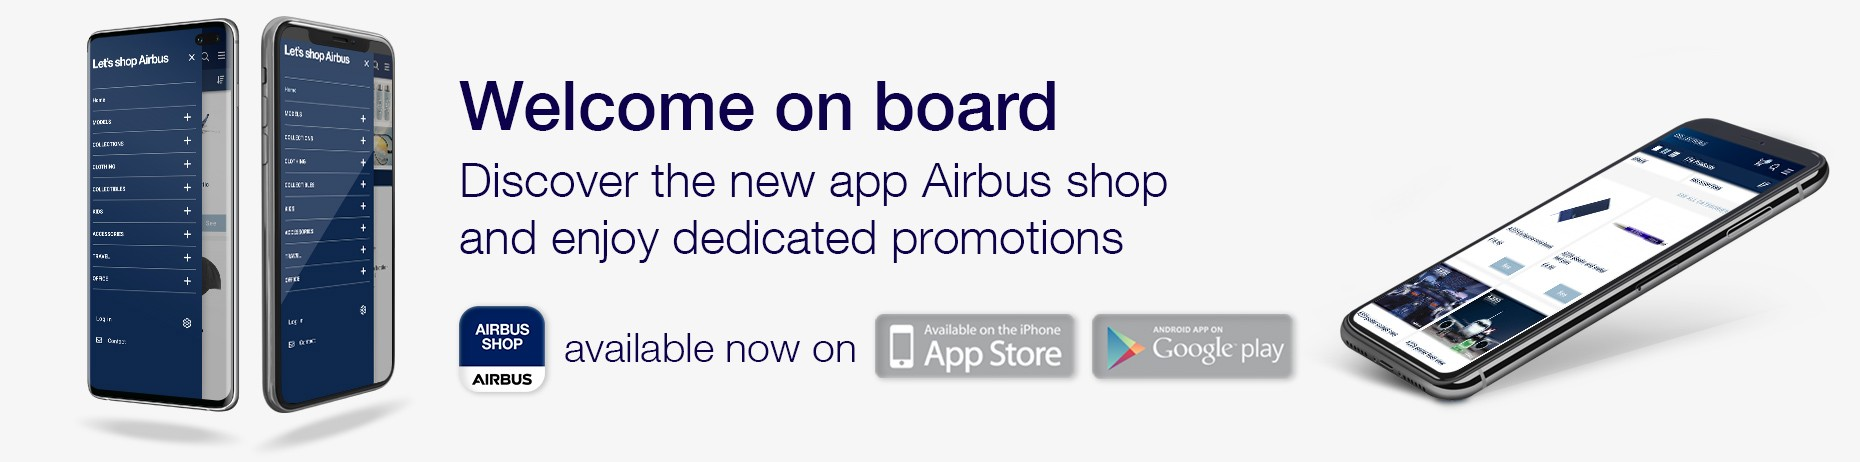 Mobile App. AIRBUS SHOP